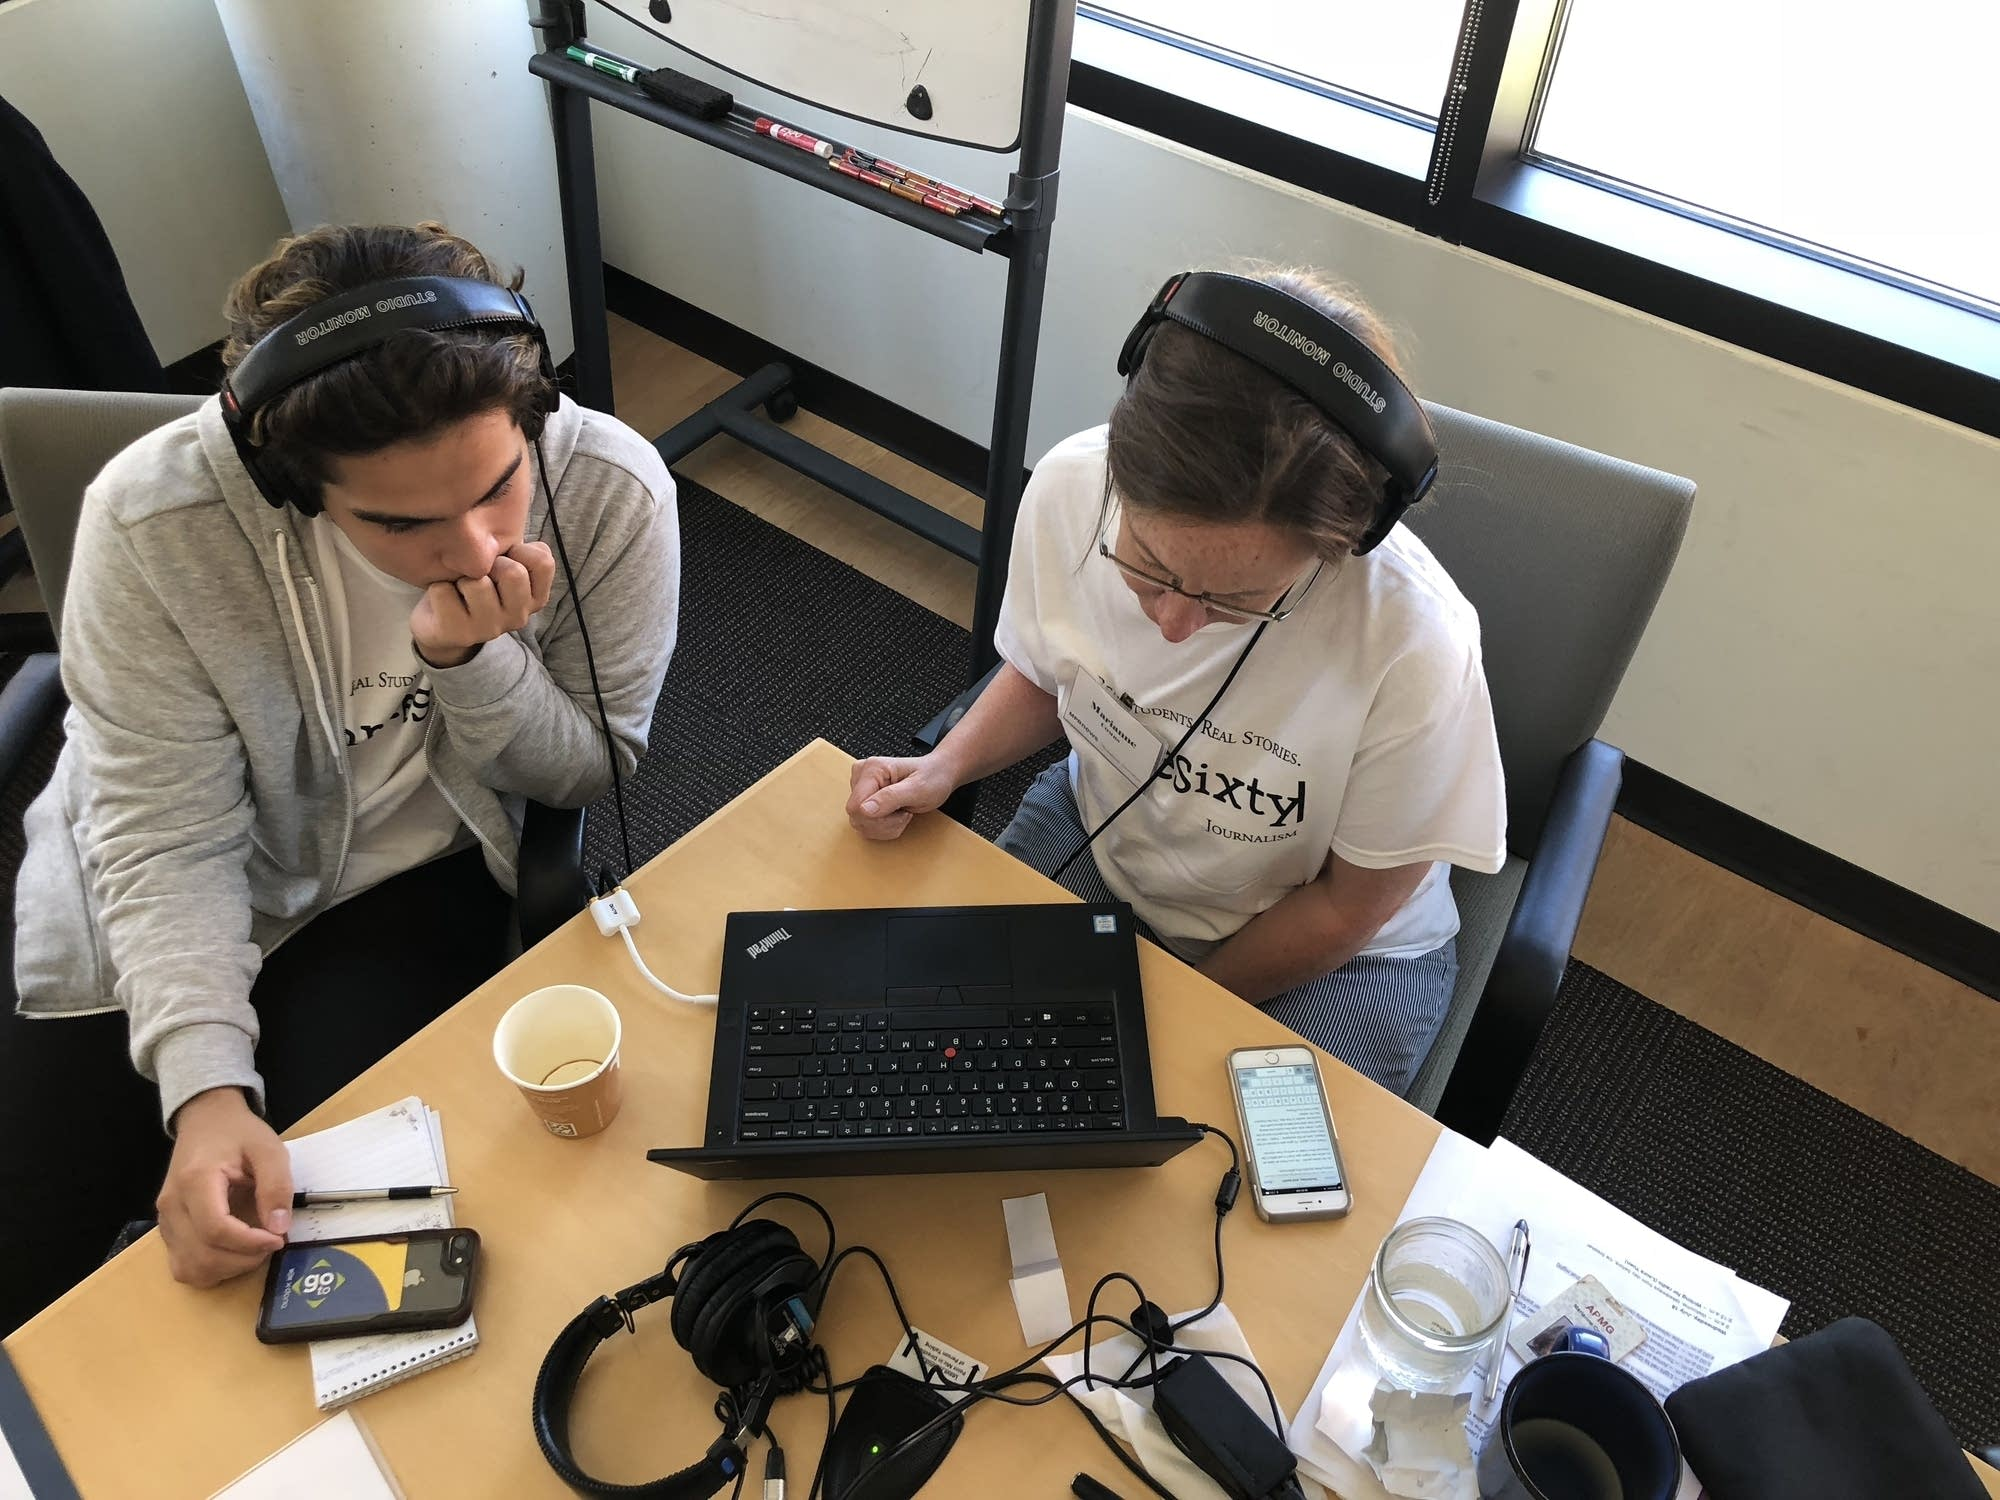 MPR News Radio Camp 2018